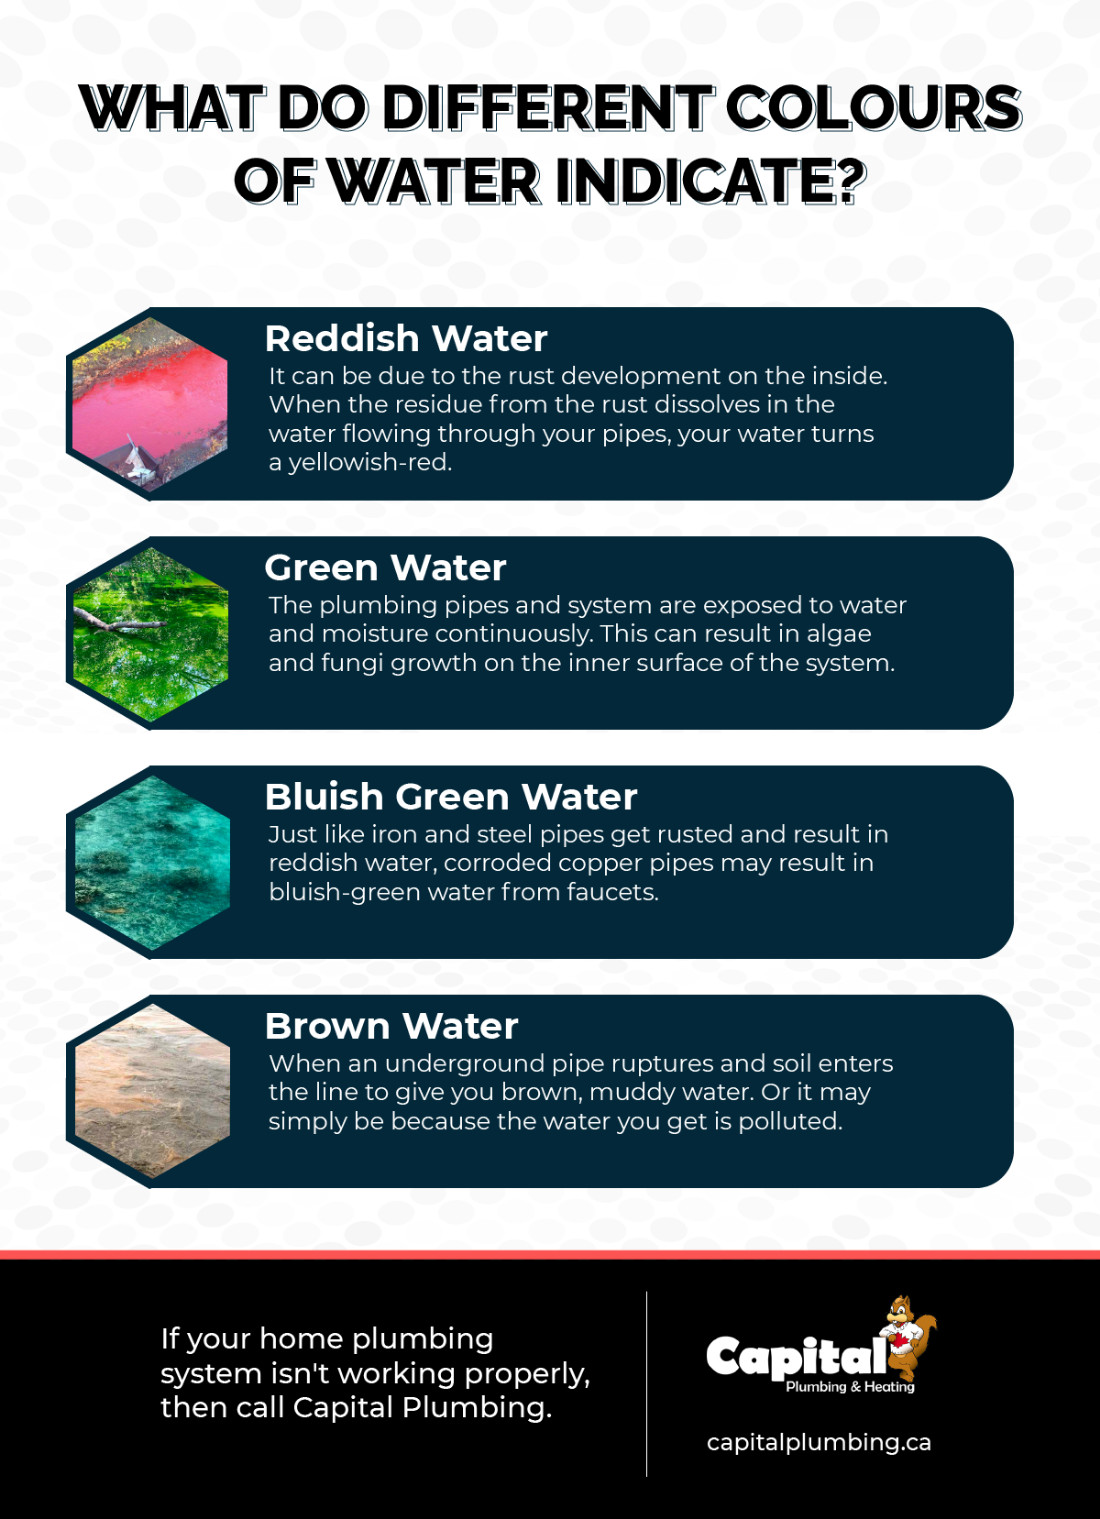 What Do Different Colours of Water Indicate